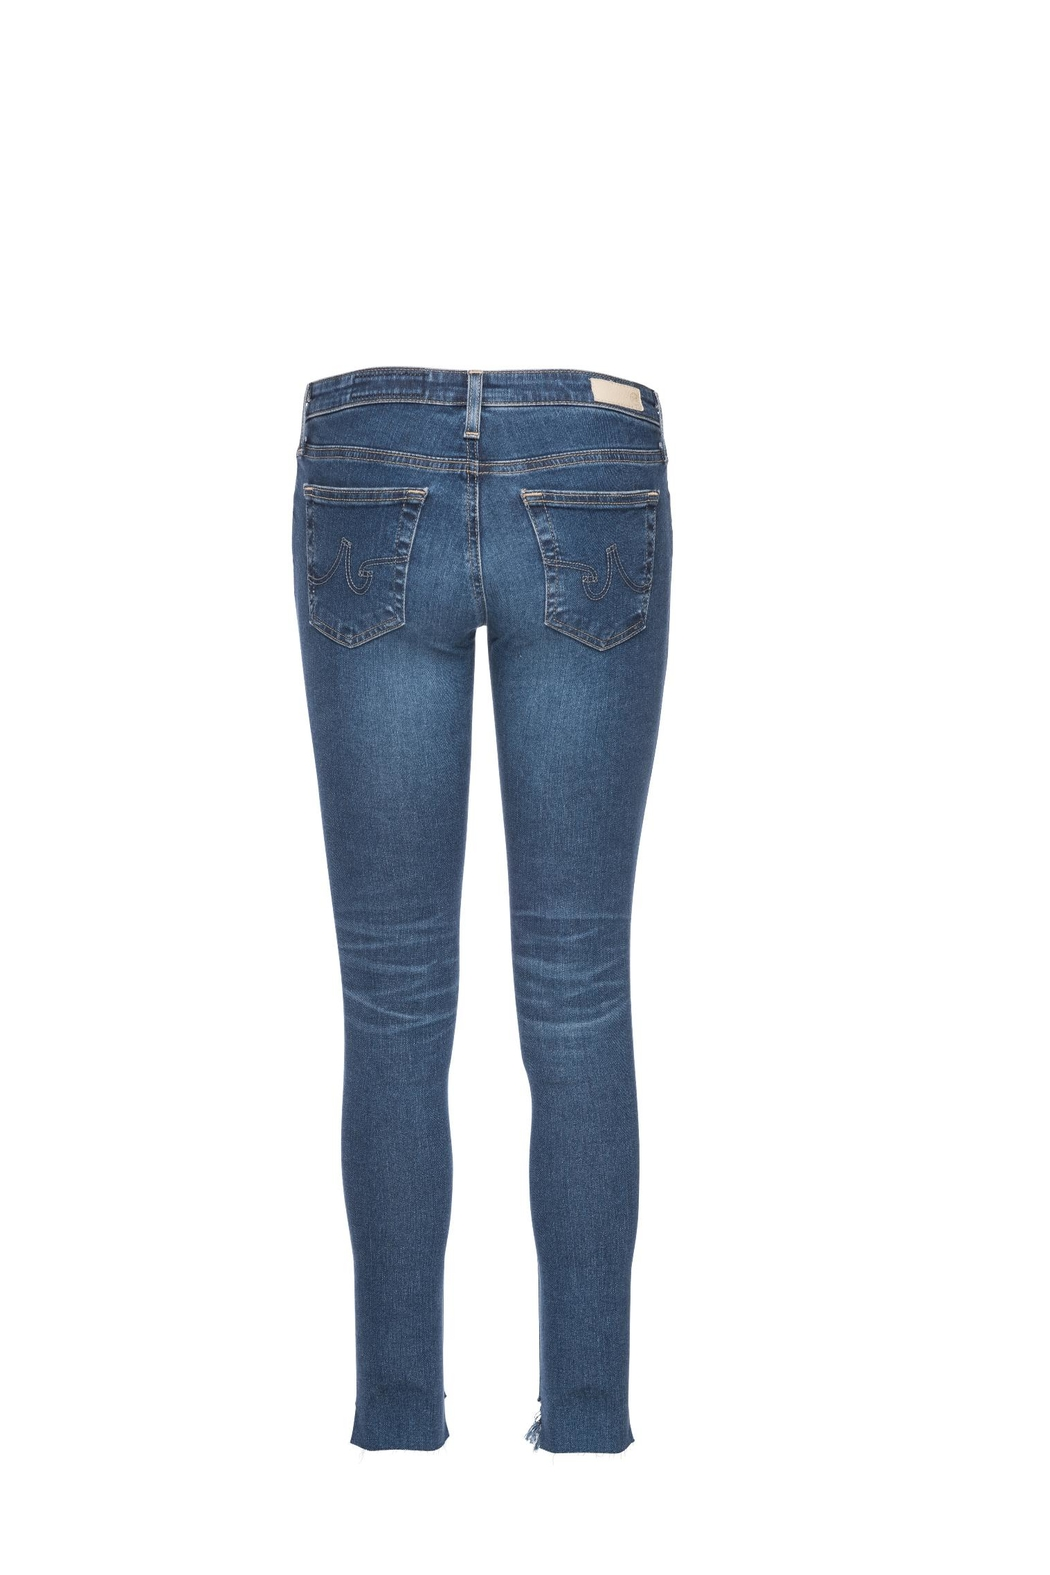 AG Adriano Goldschmied Legging Ankle Jeans - Front Full Image